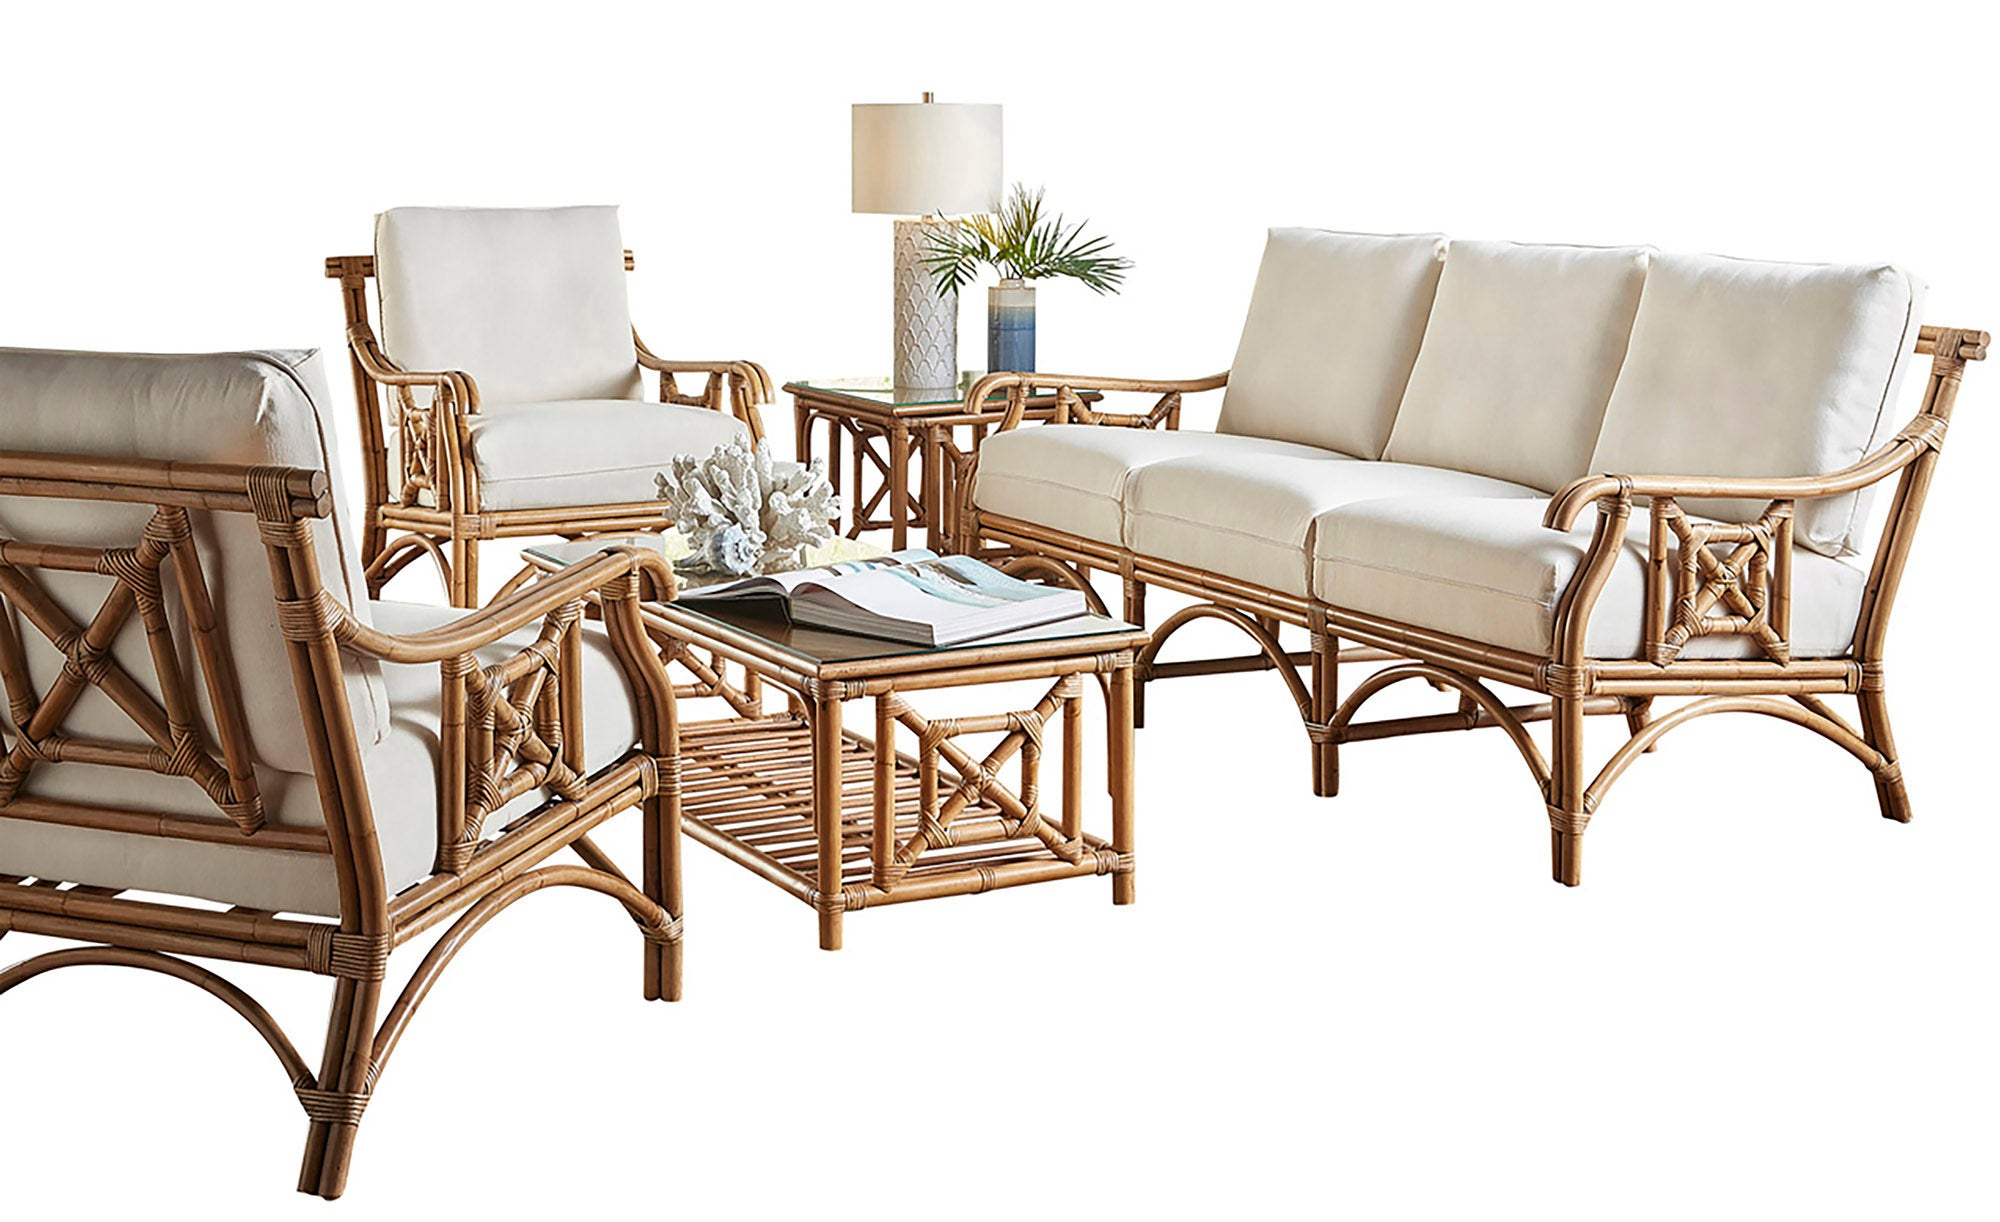 Panama Jack Sunroom Plantation Bay 5 Pc Living Set With